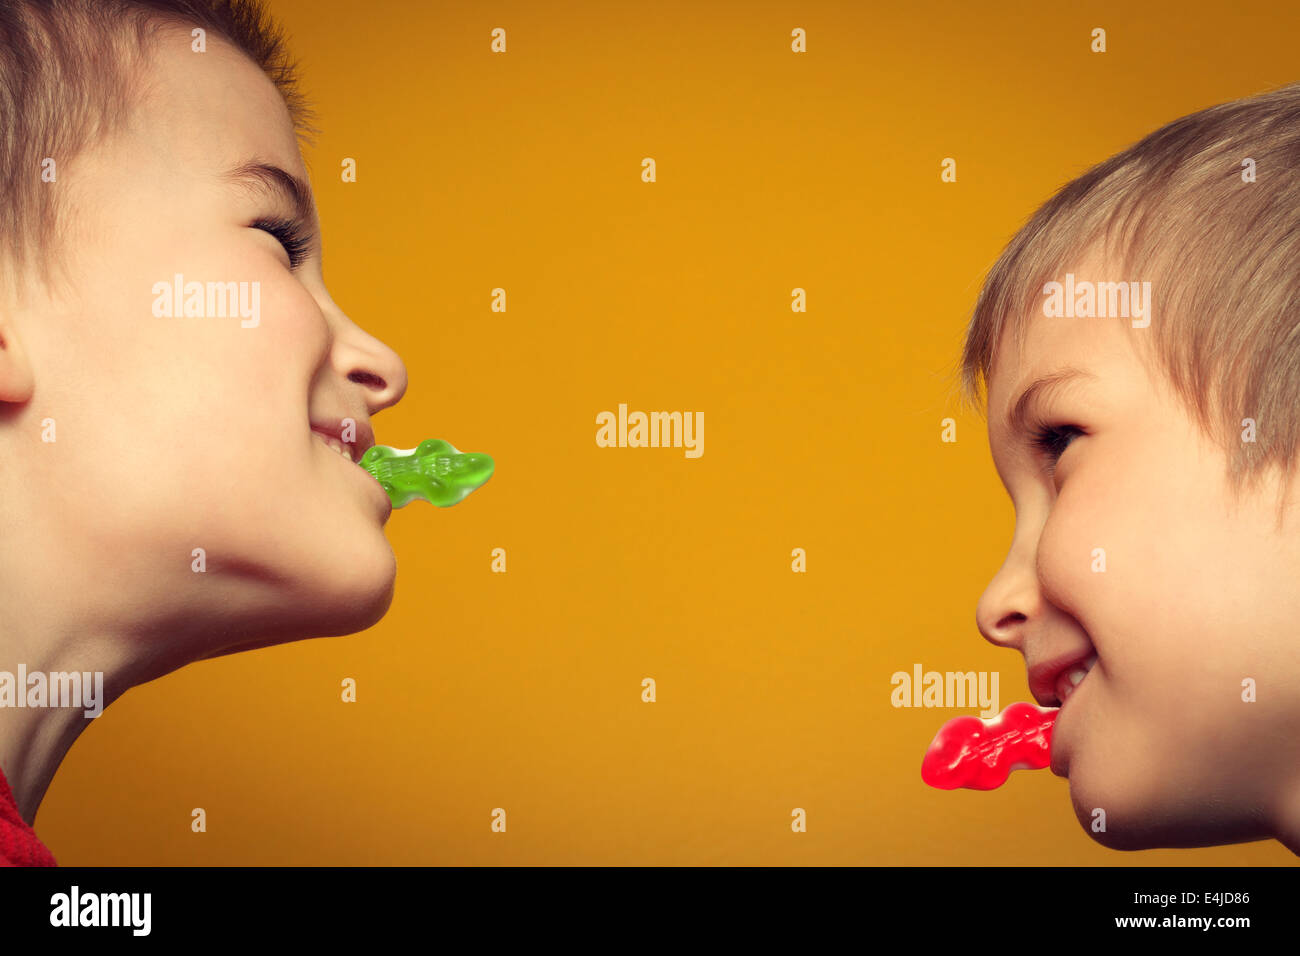 Young boys facing each other while eating candy. - Stock Image